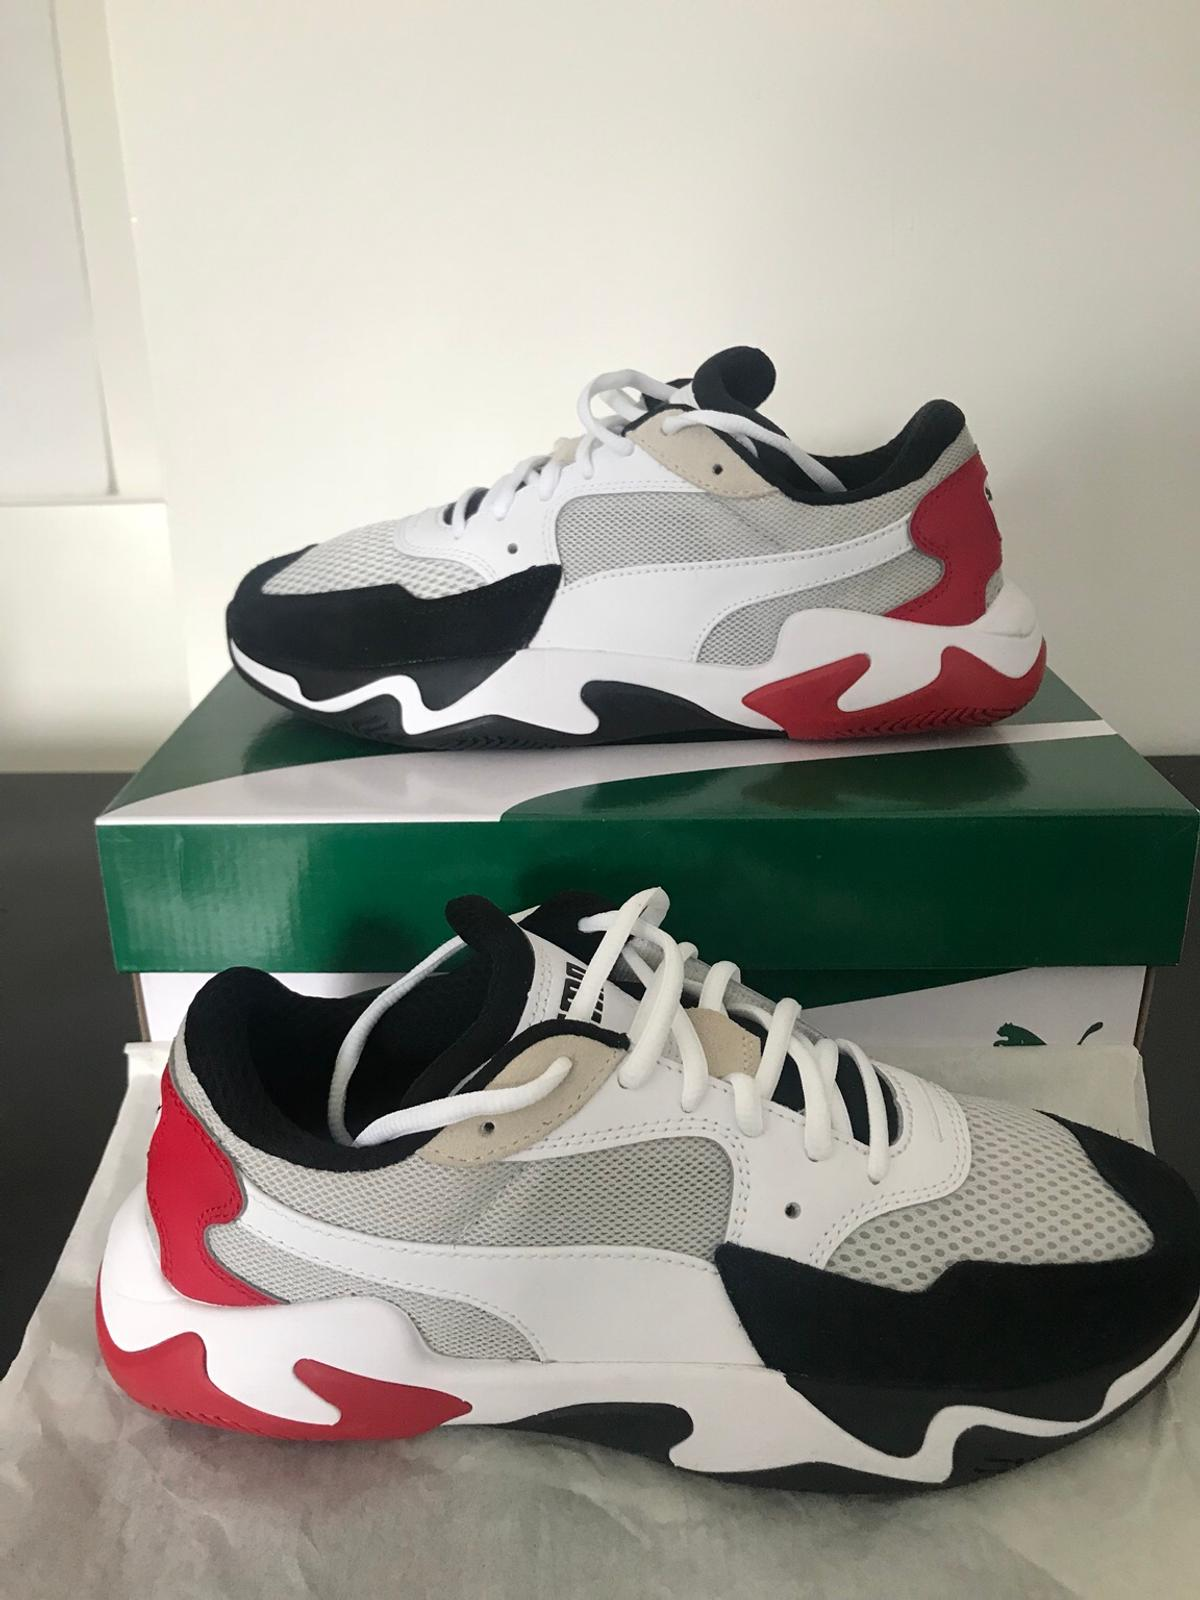 03d7ddfd Puma Storm Origins Women's Trainer Size 7/40 in E17 Forest for ...